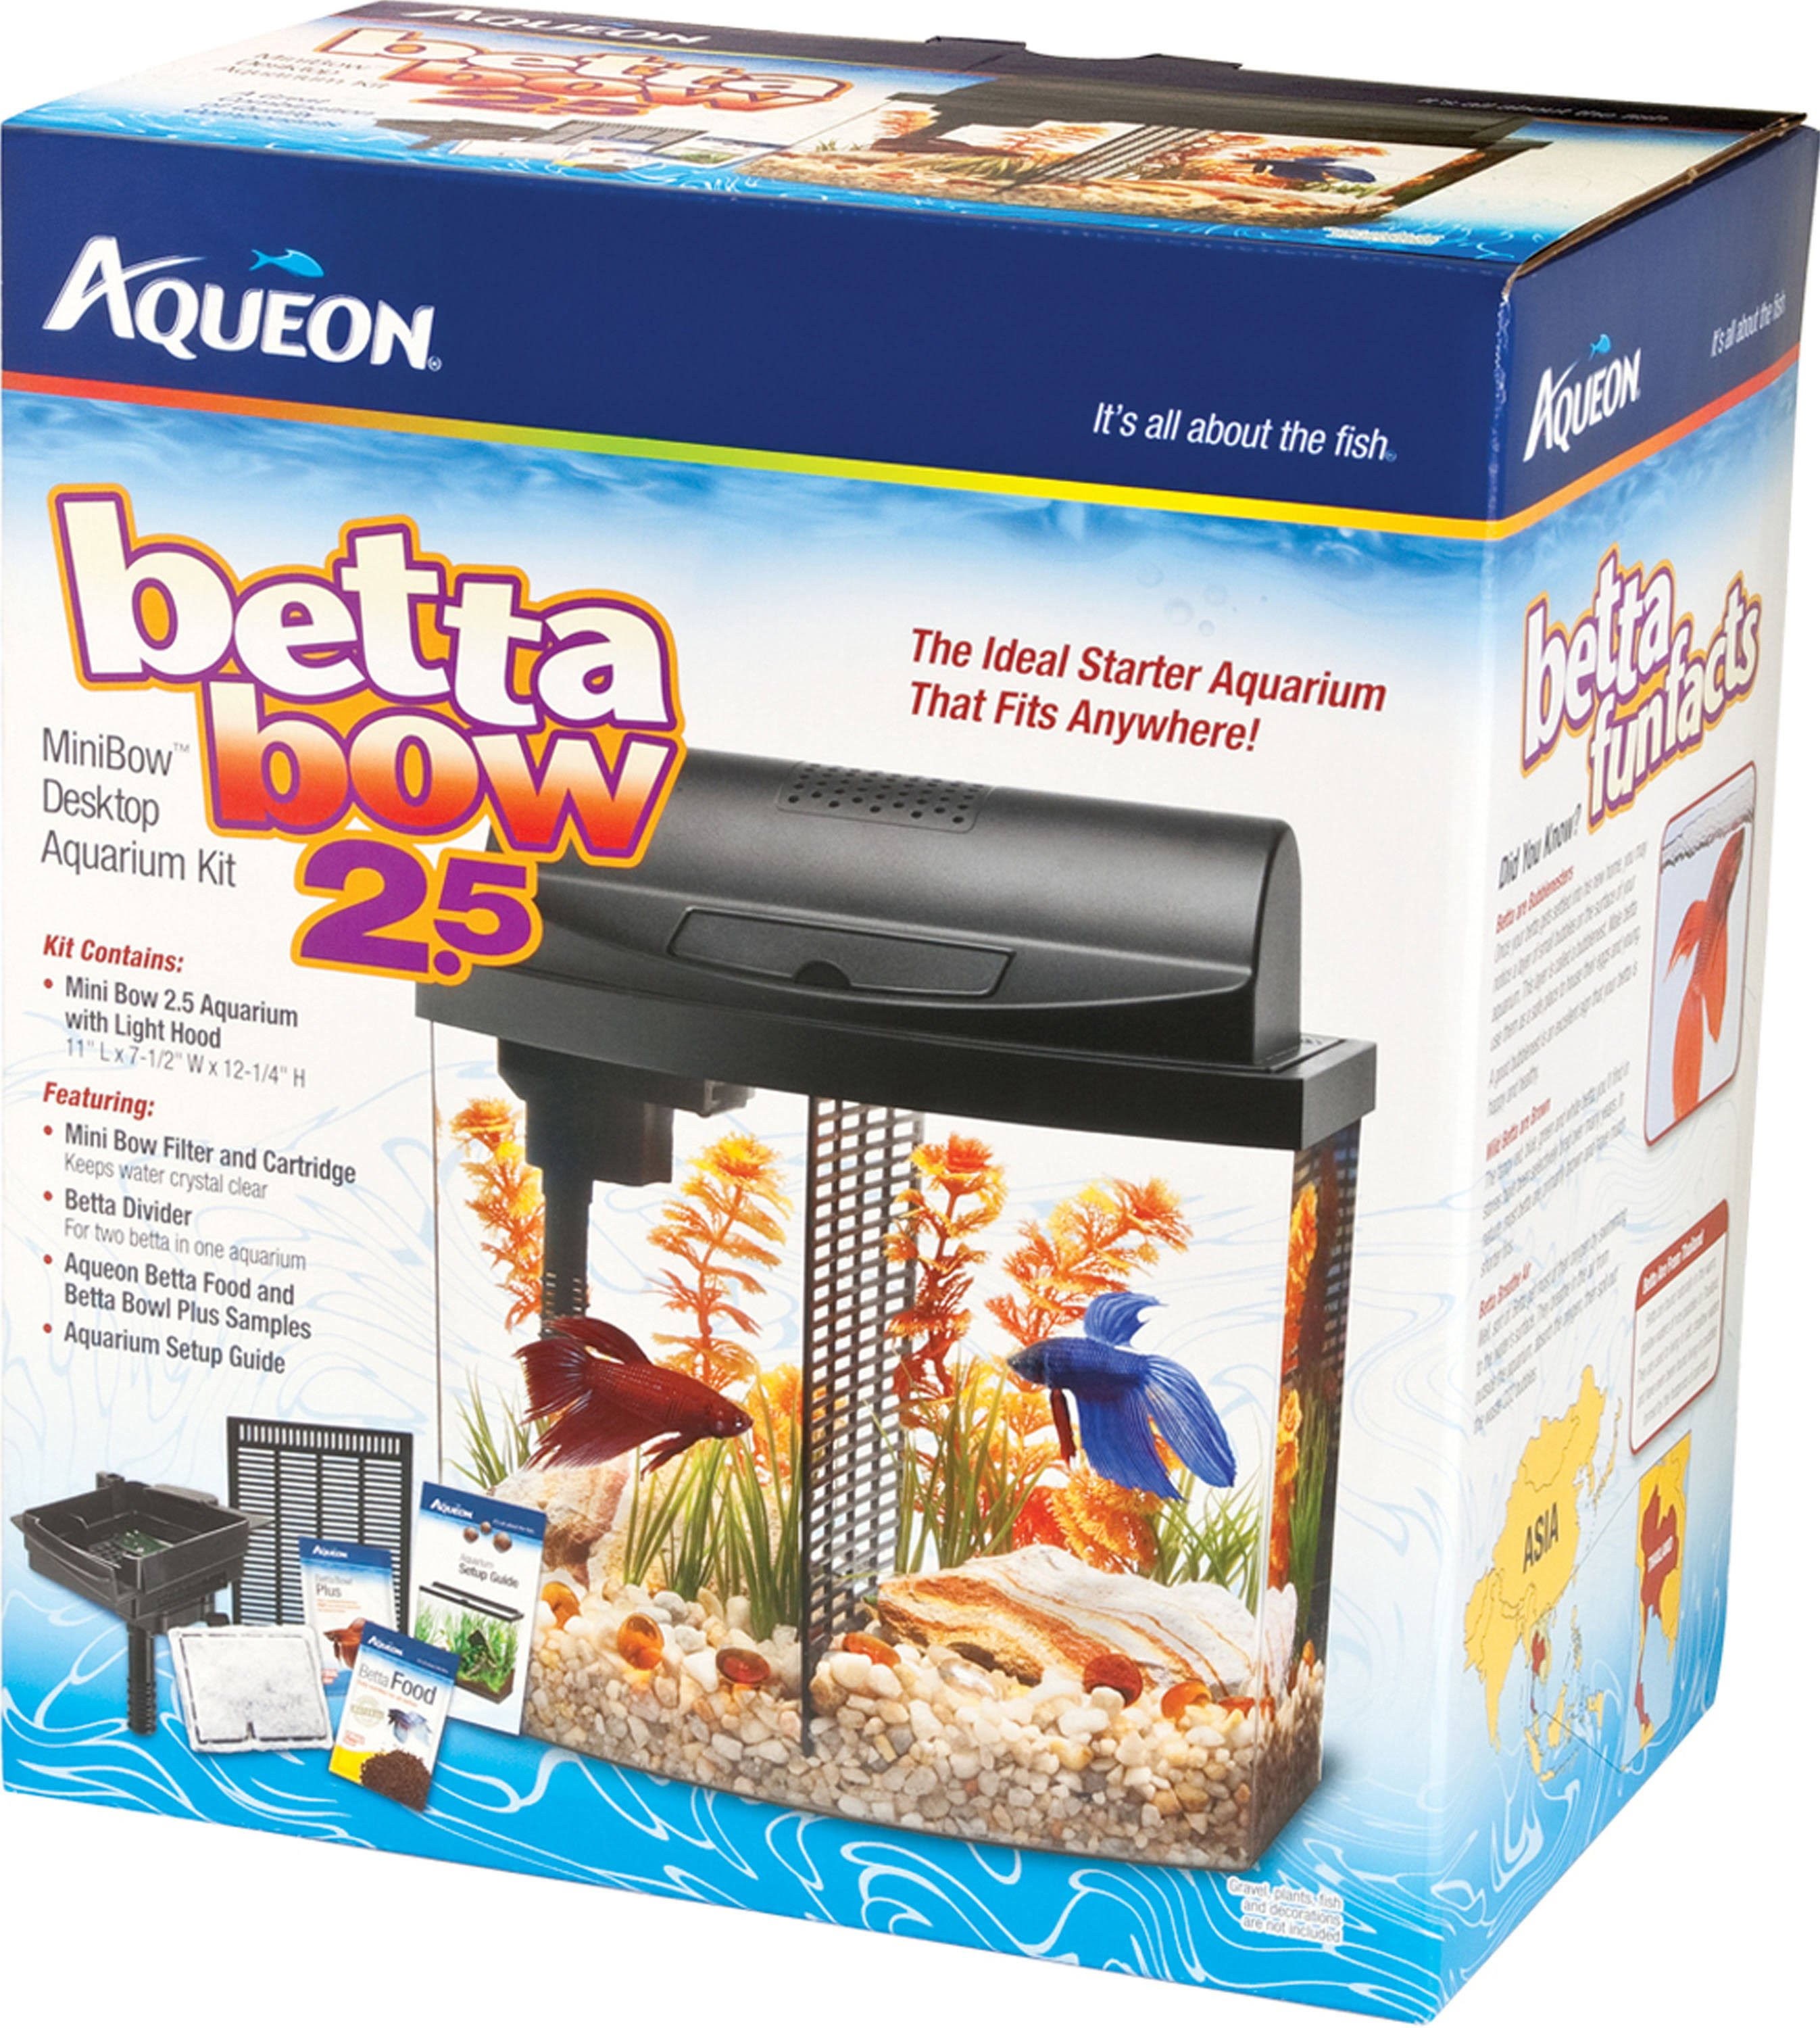 Aqueon Betta Bow Desktop Aquarium Led Kit